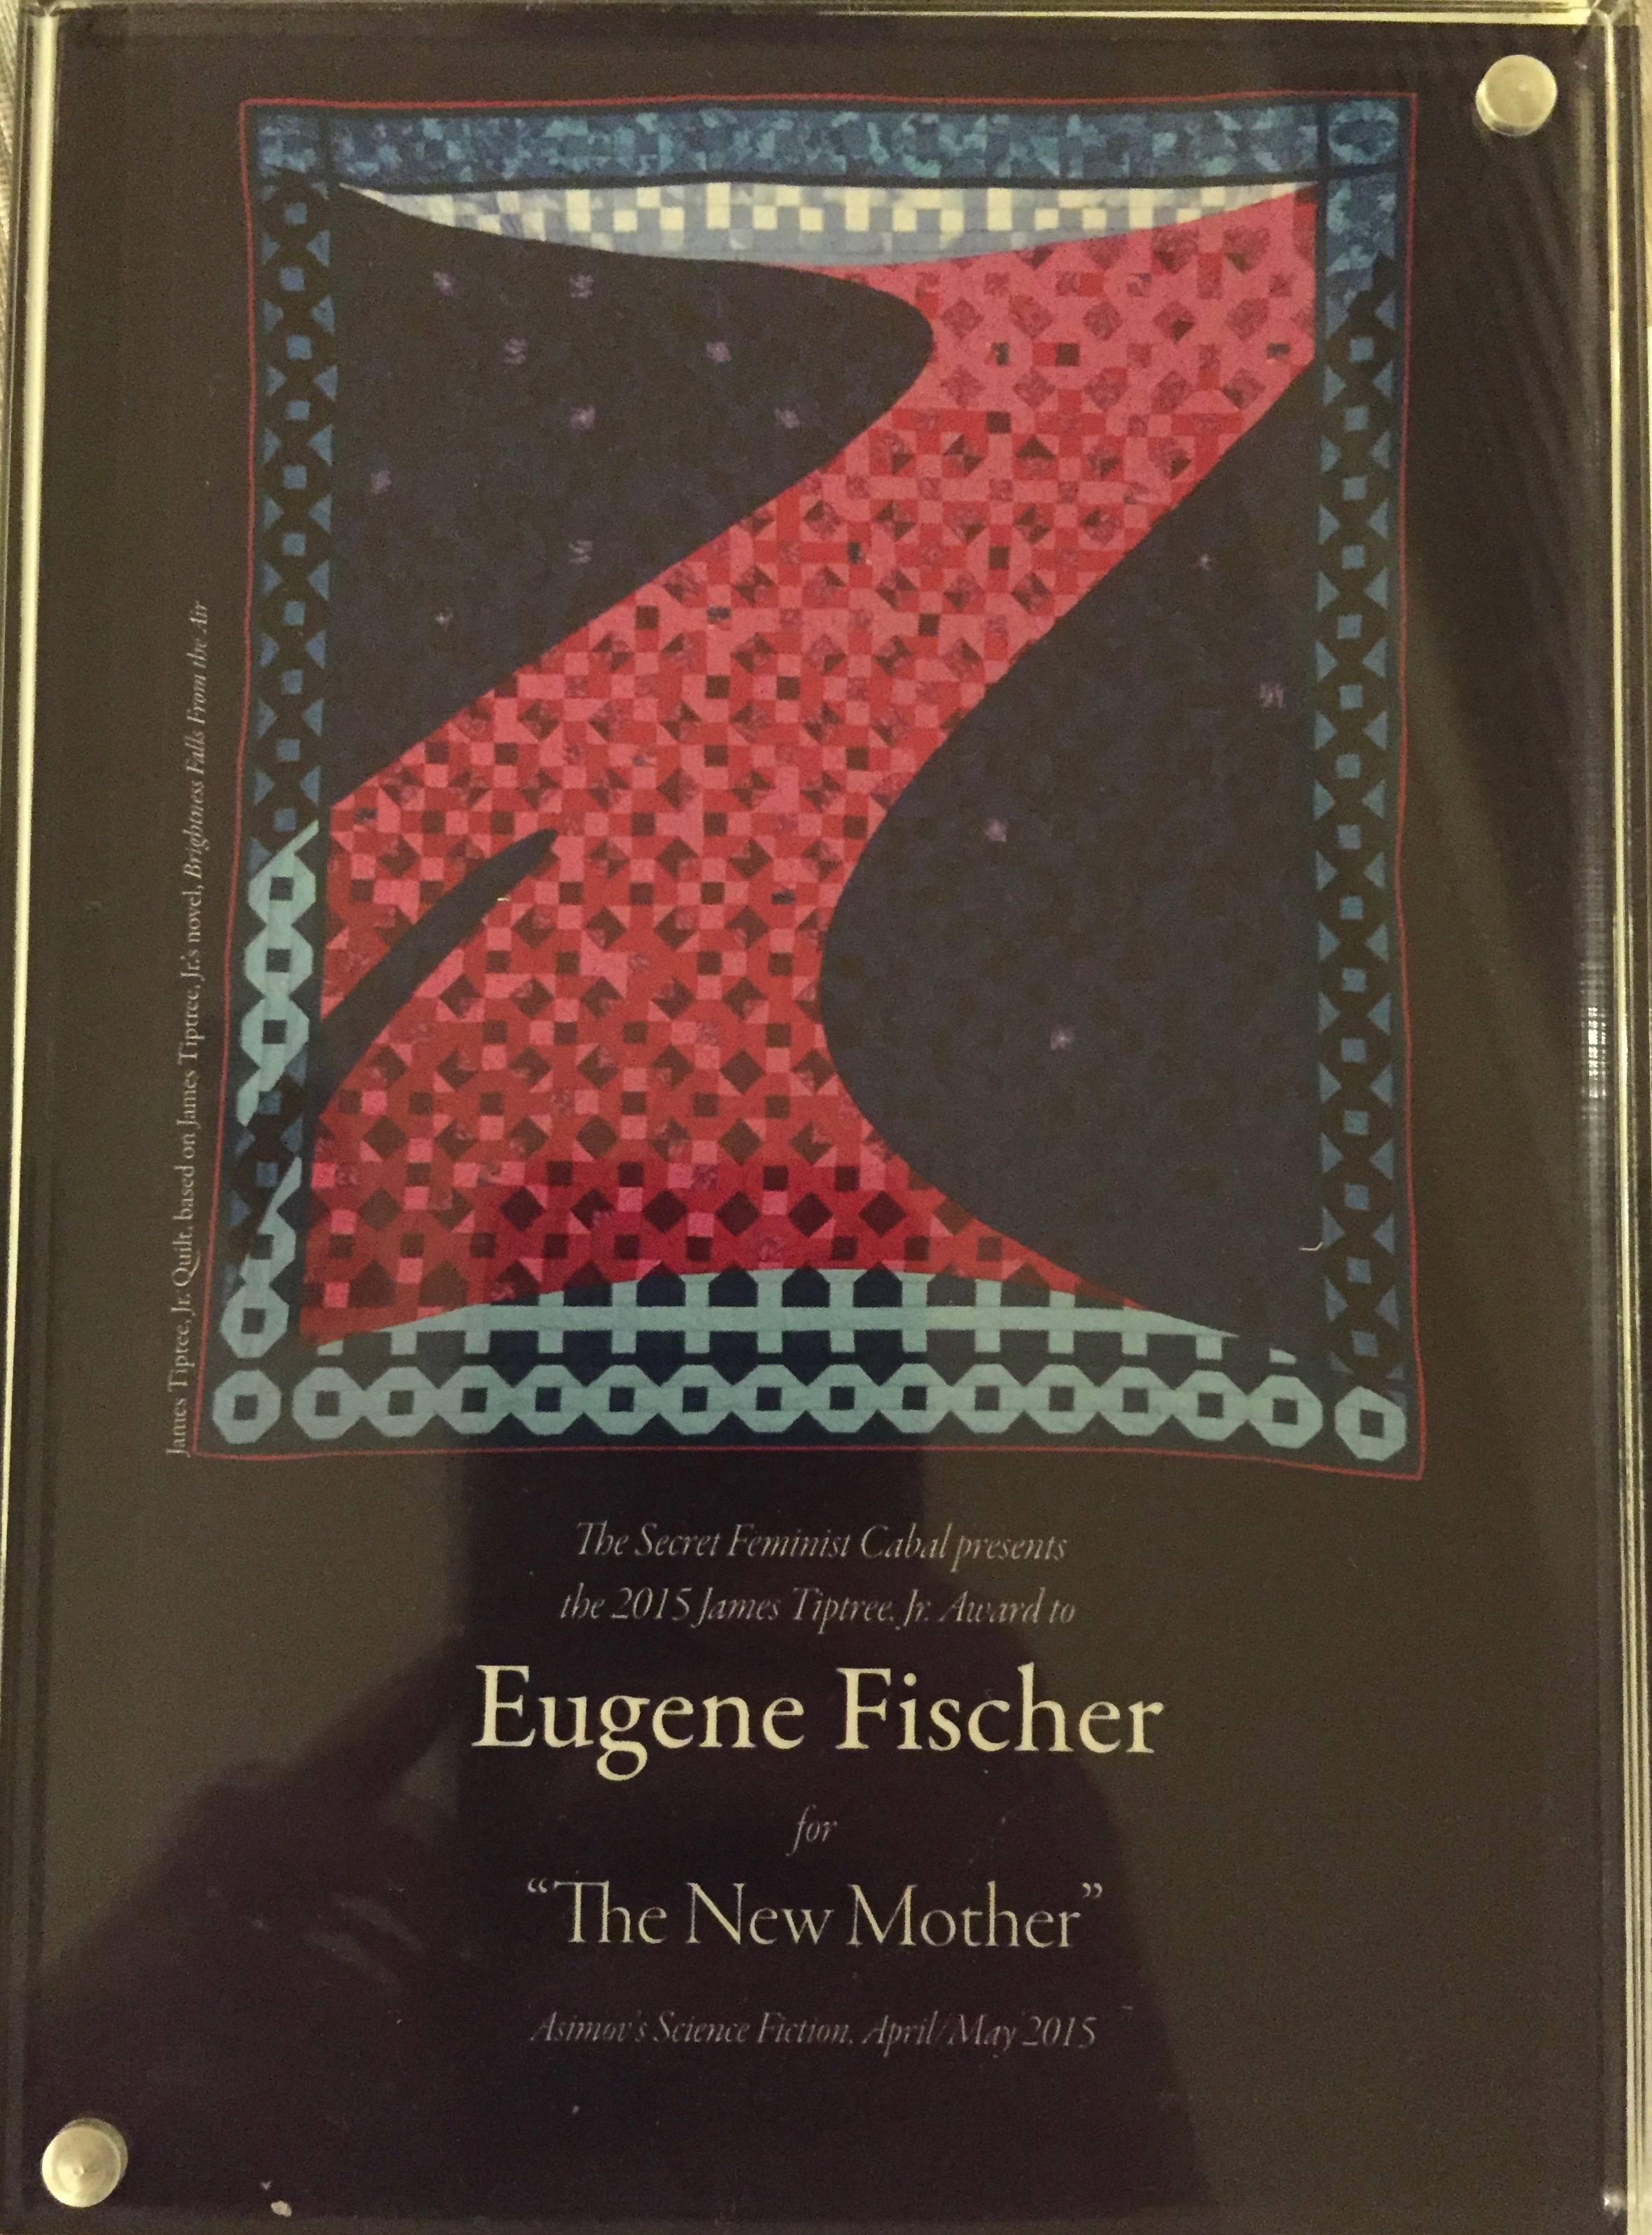 Story: The New Mother – Eugene Fischer